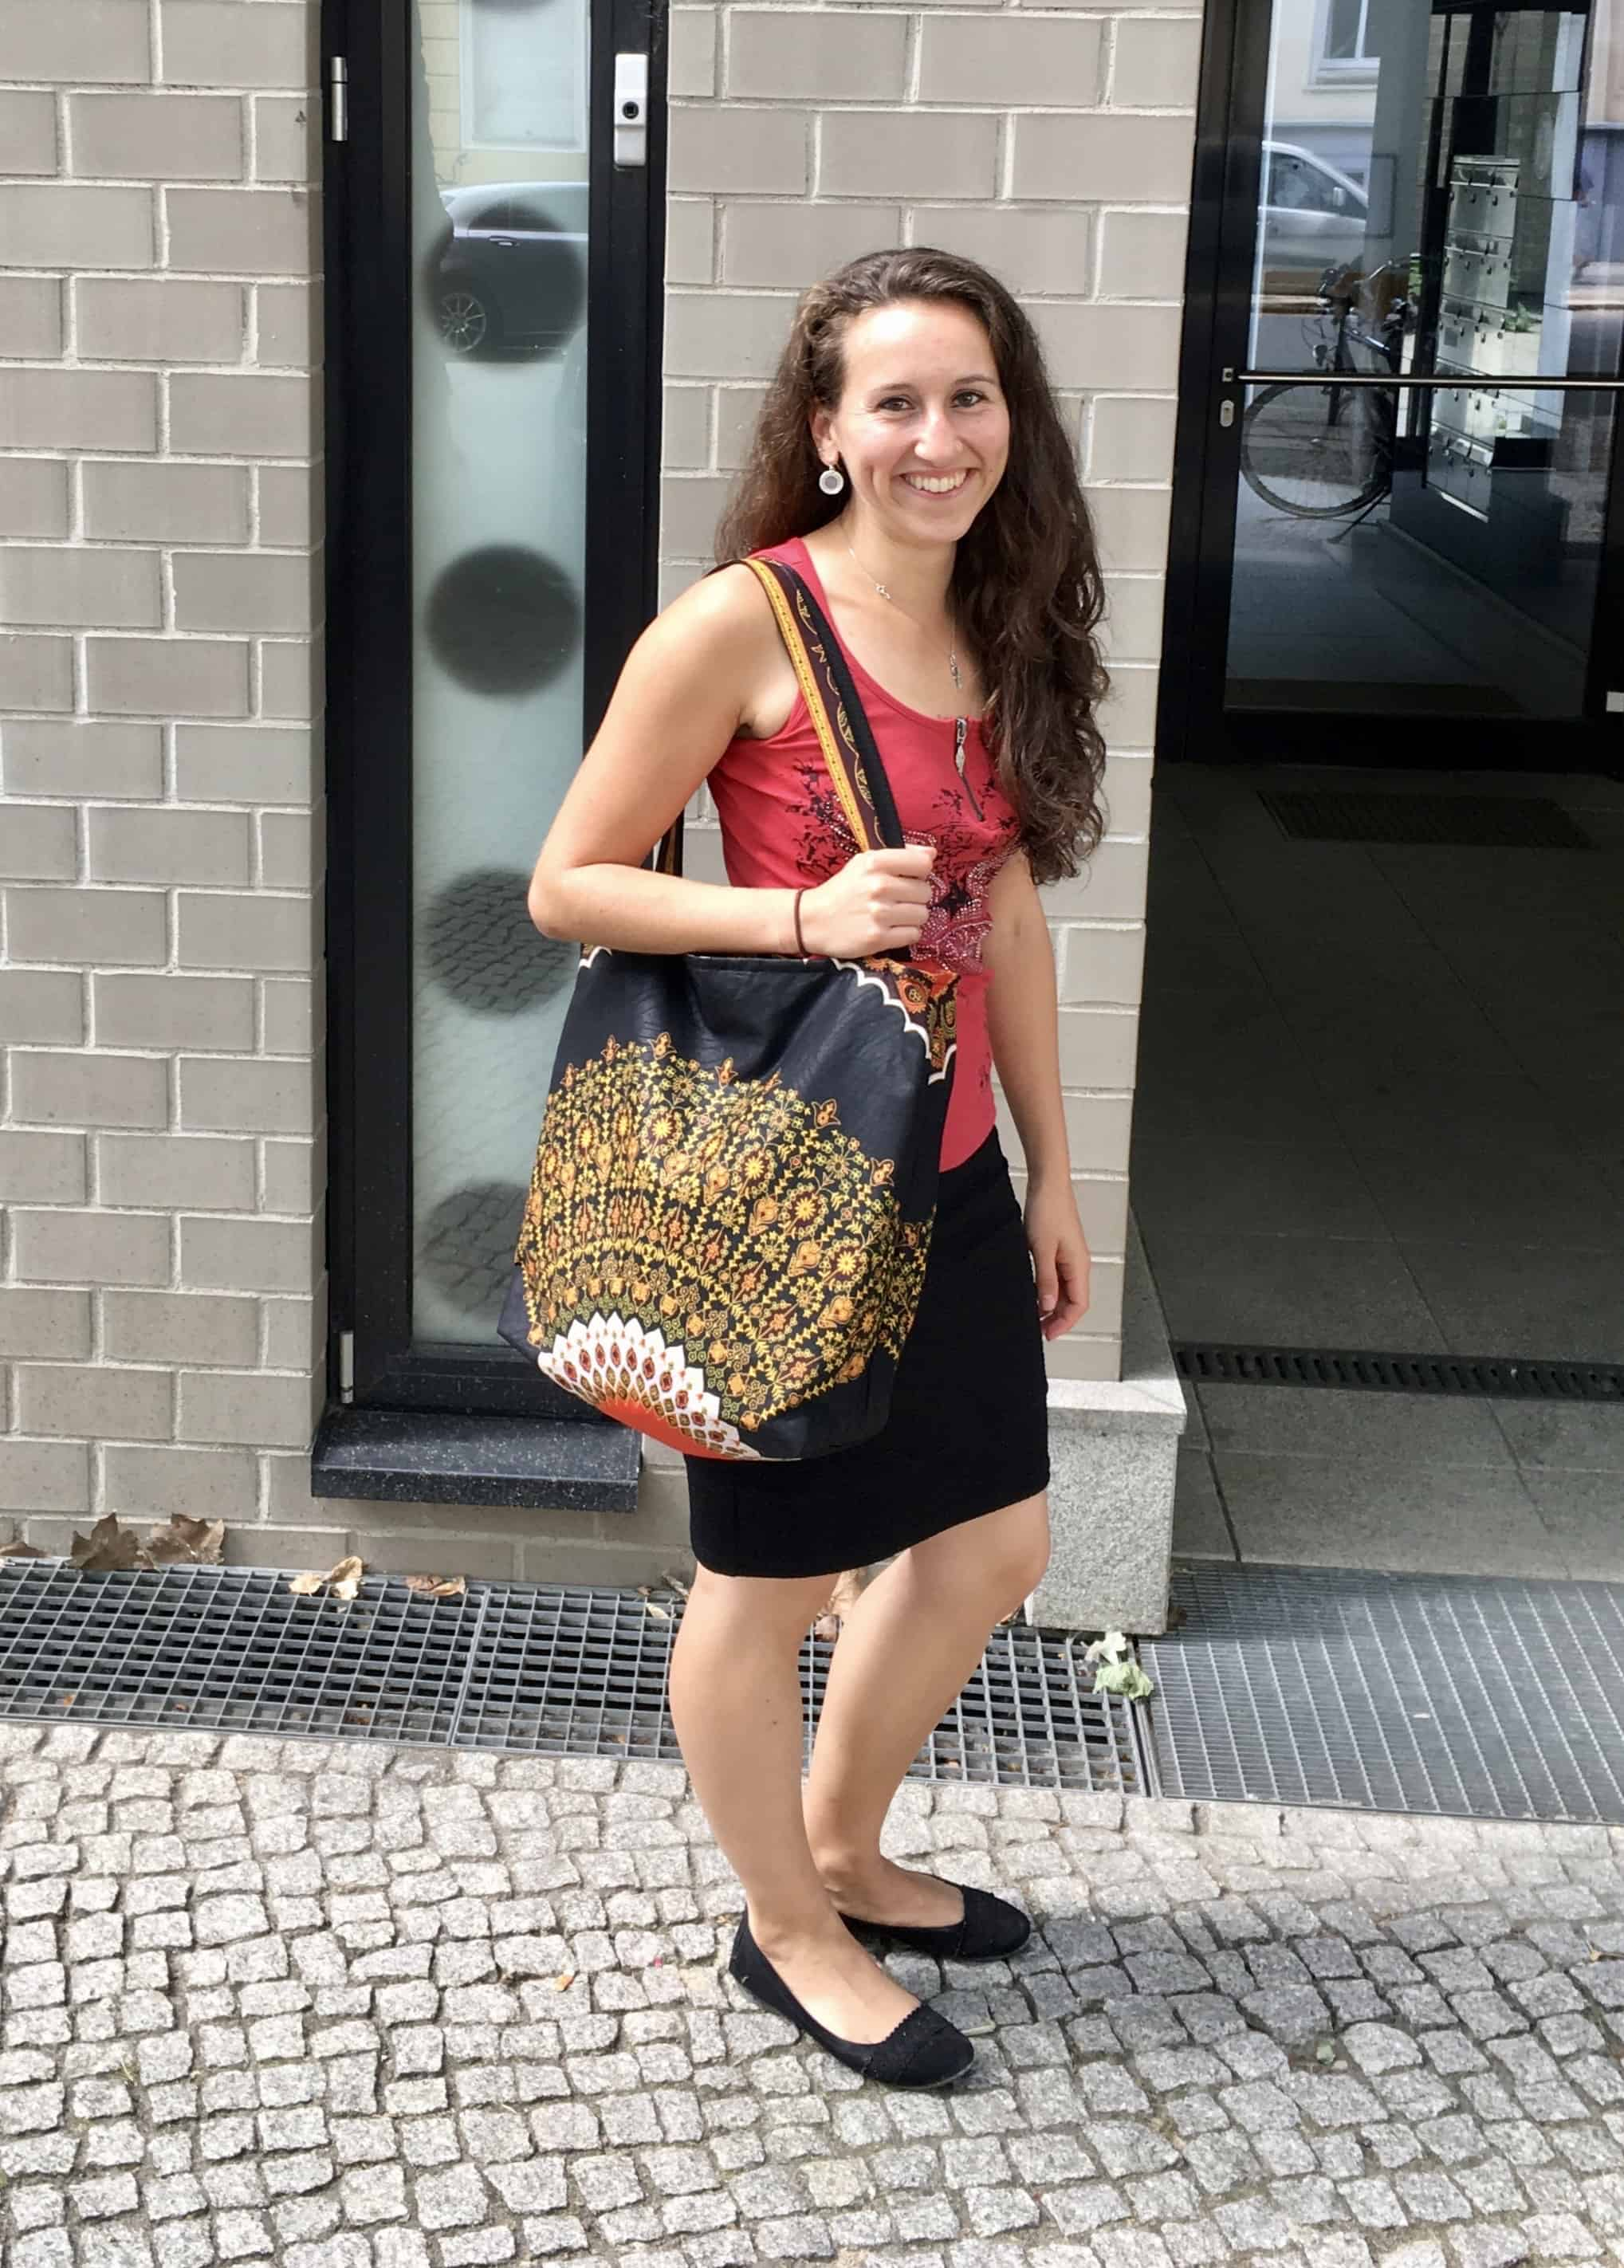 Custom made large handbag into which a 17 inch laptop fits